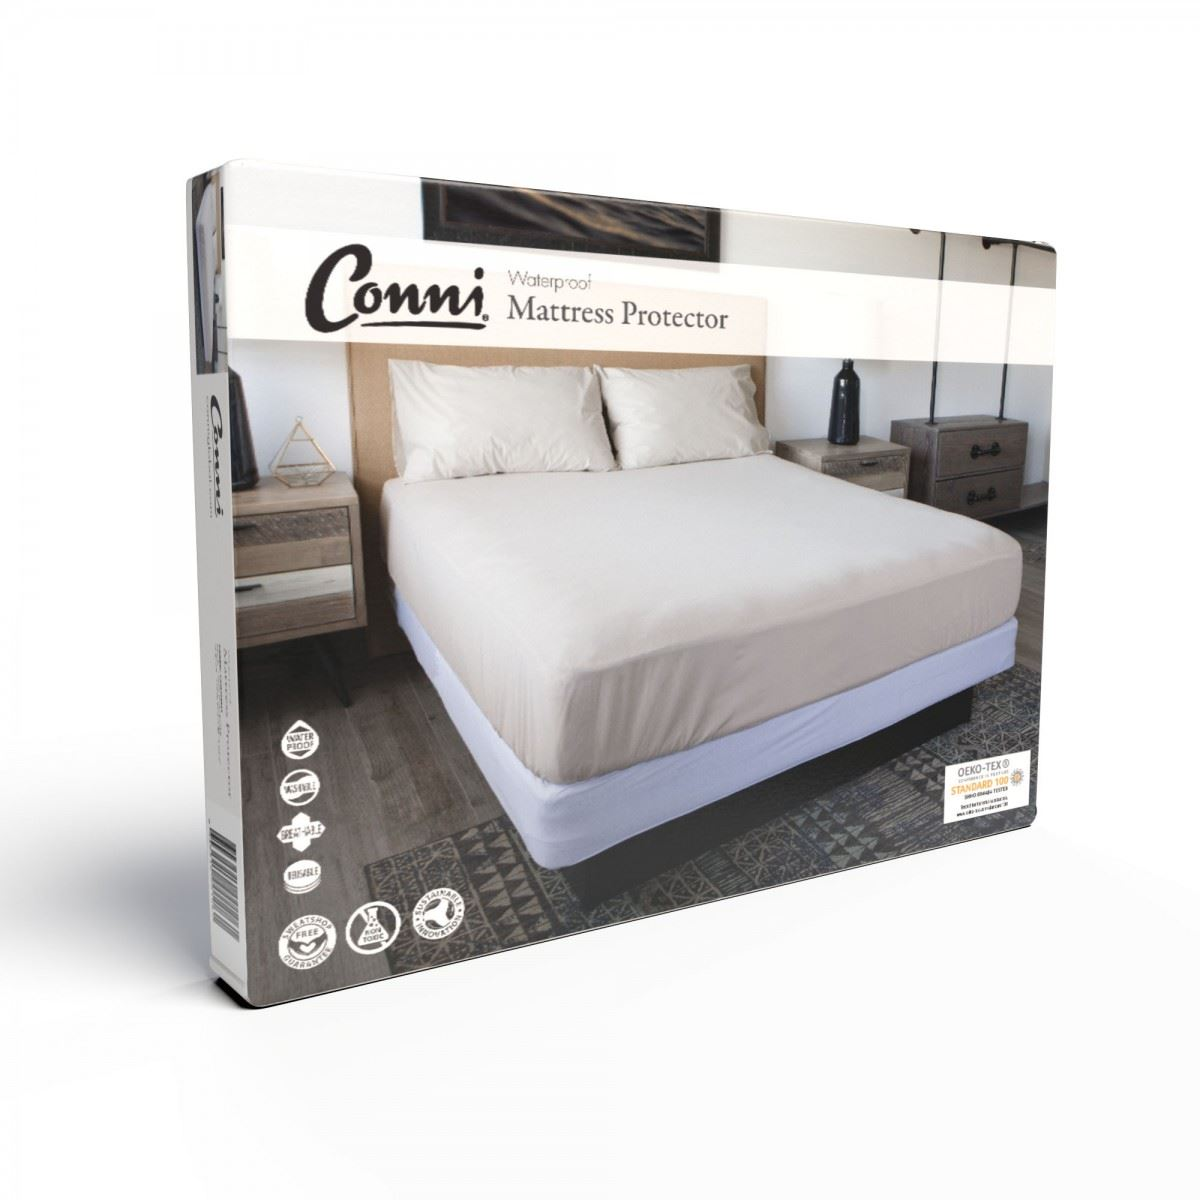 Picture of Conni Mattress Protector